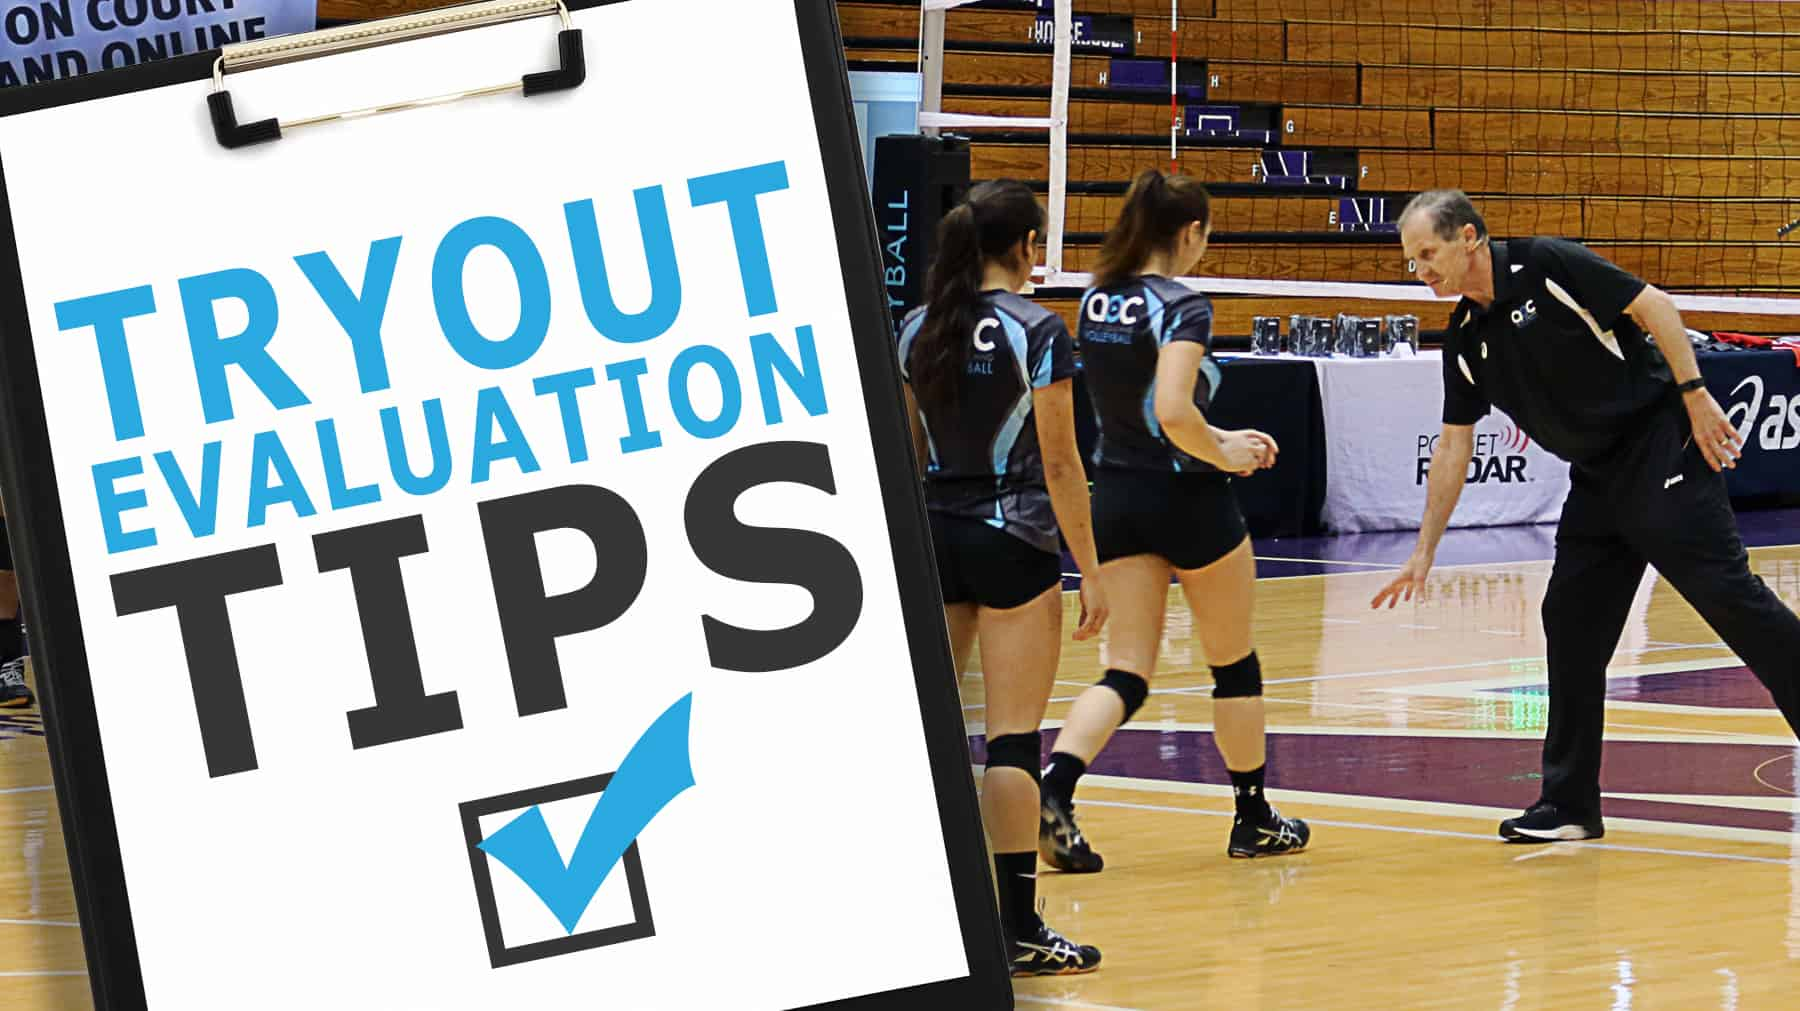 Tryout evaluation tips